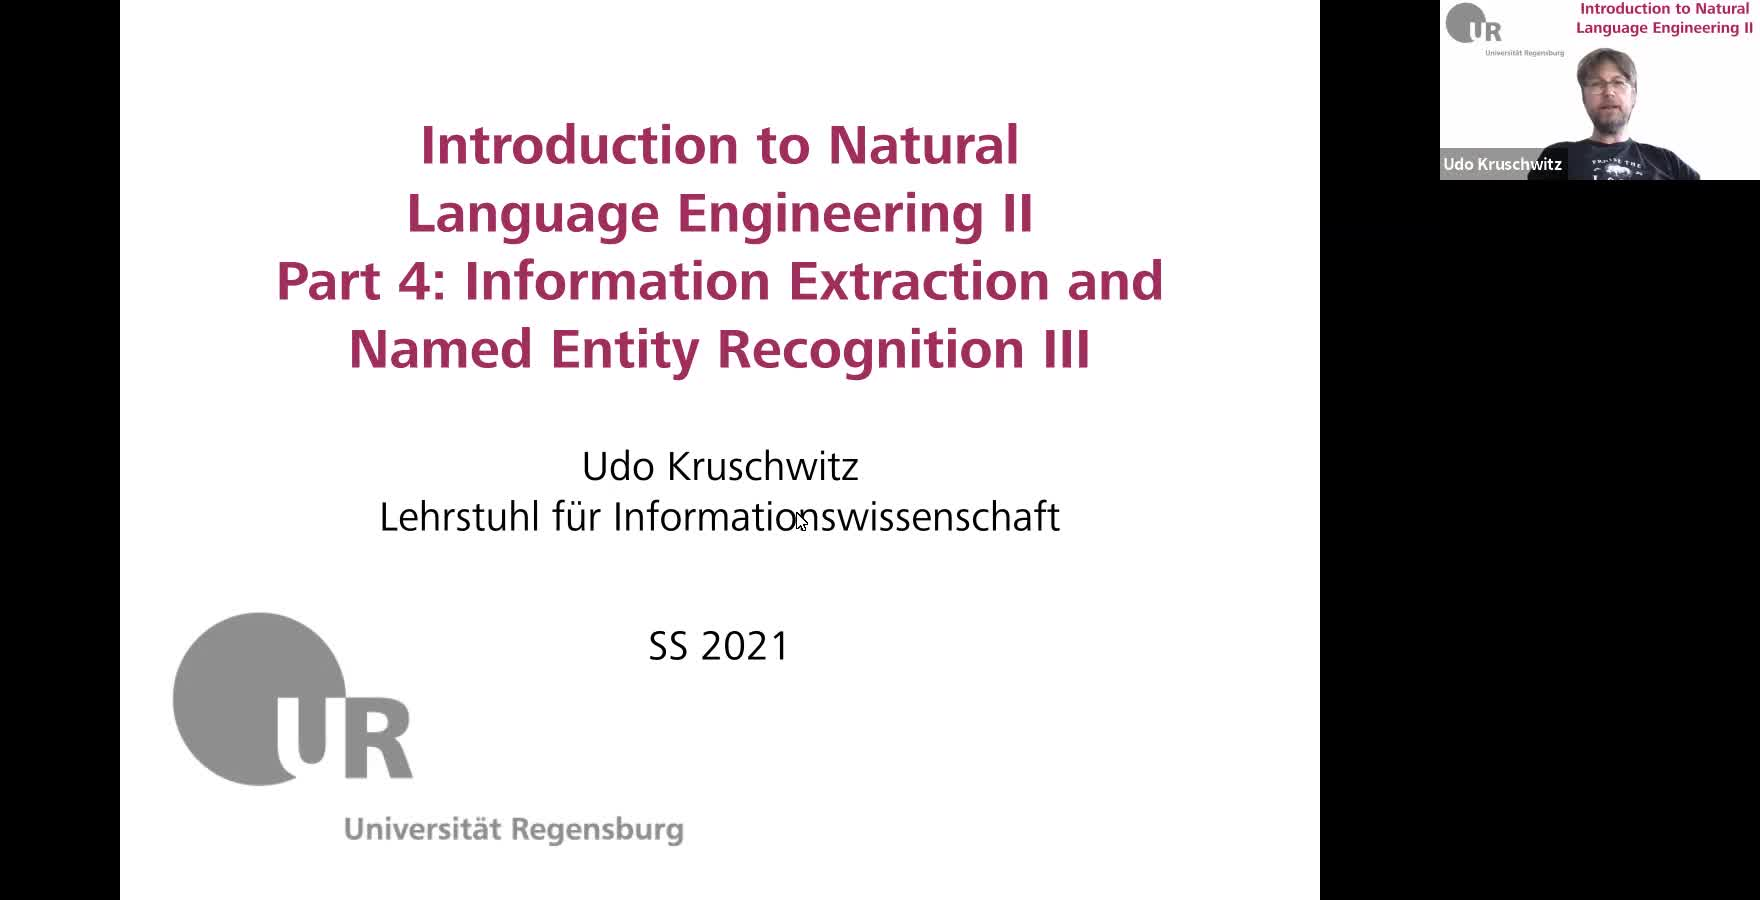 Introduction to Natural Language Engineering 2 / Informationslinguistik 2 - Lecture 5 (Information Extraction and Named Entity Recognition III / Informationsextraktion und Extraktion von Entitäten III)